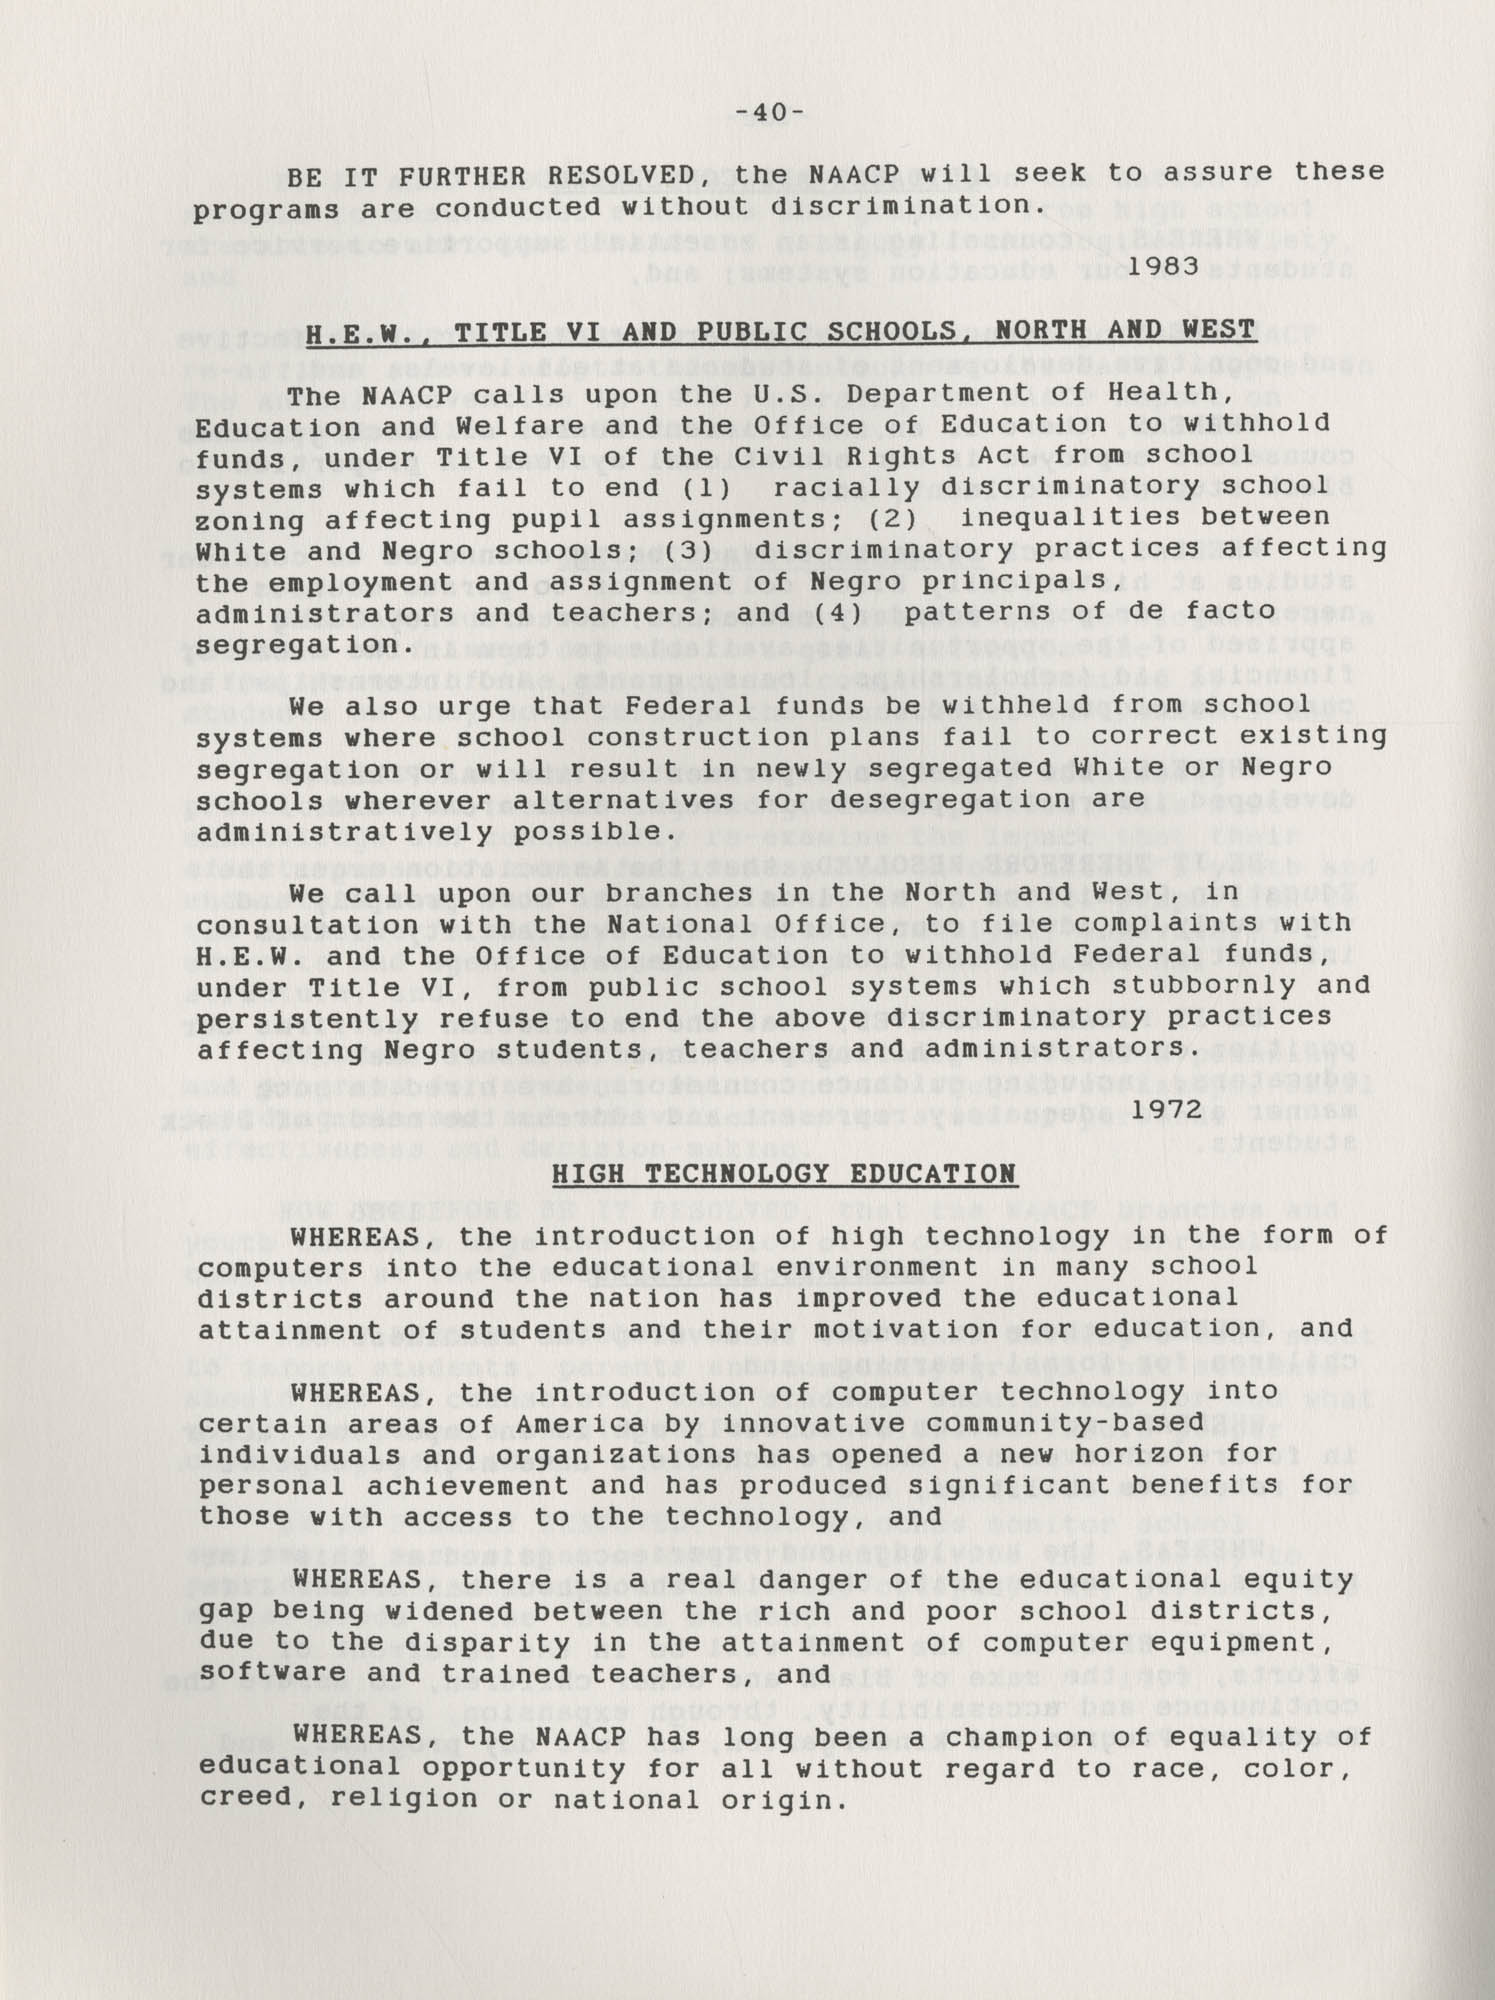 NAACP Resolutions on Education, 1970-1989, Index to Education Resolutions, Page 40